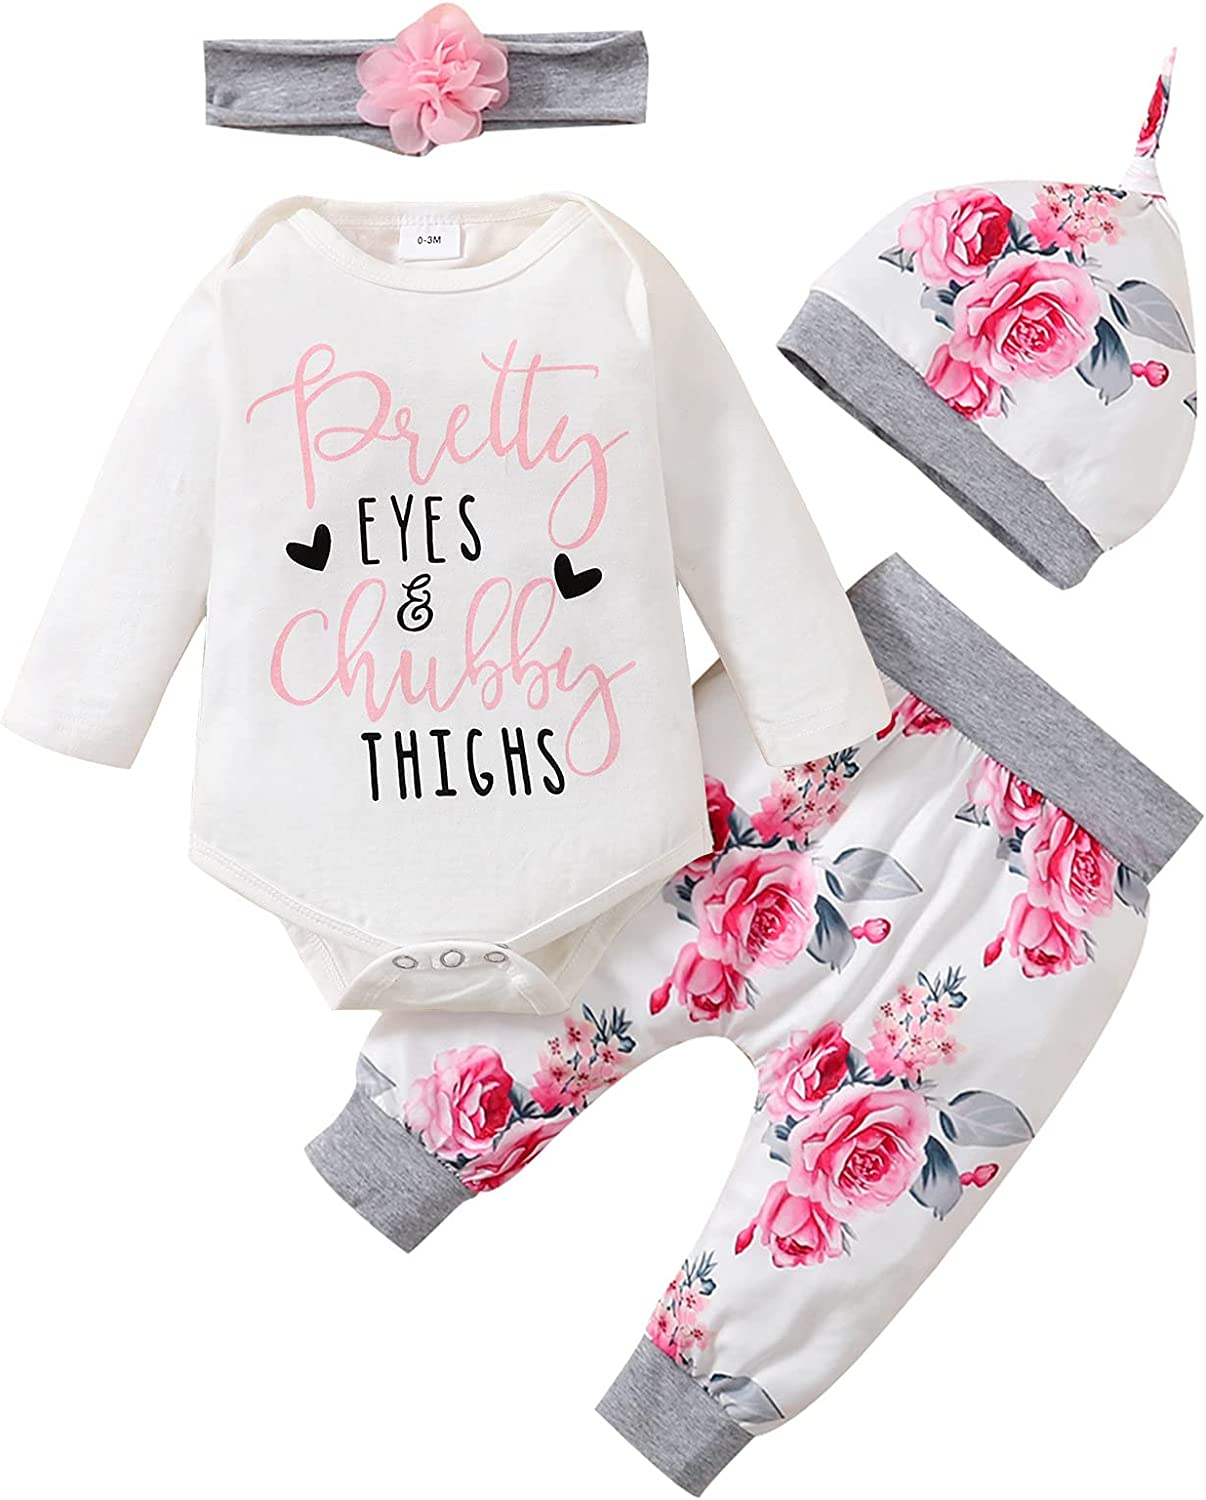 Newborn Baby Girl Clothes Infant Girl Outfits Cute Printed Romper Flower Pants Set Baby Girl Gifts